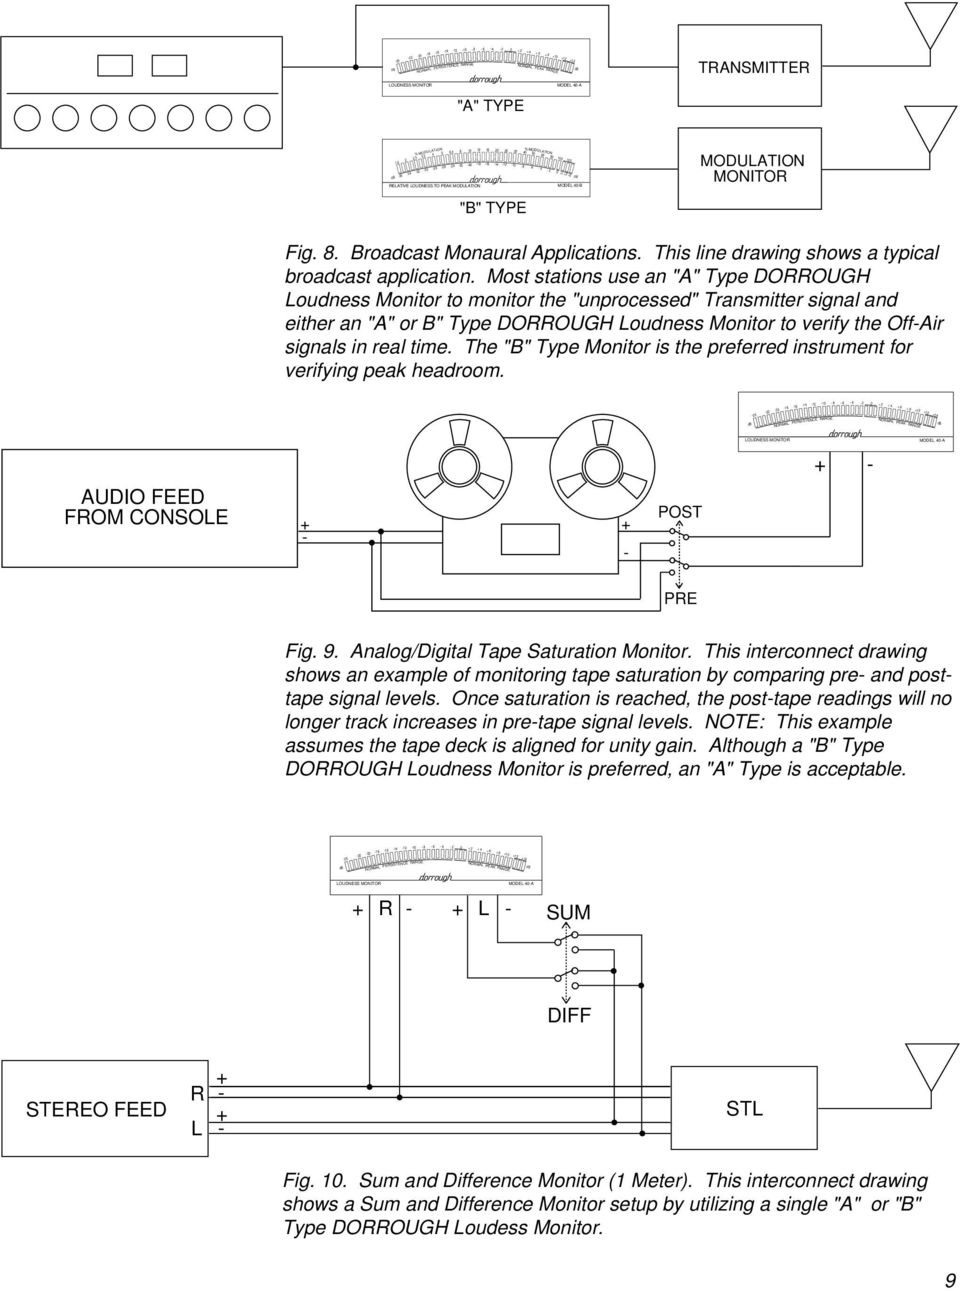 Technical Instruction Manual Pdf This Is A Simple Circuit Diagram Of 5led Audio Vu Meter Using Ic Line Drawing Shows Typical Broadcast Application